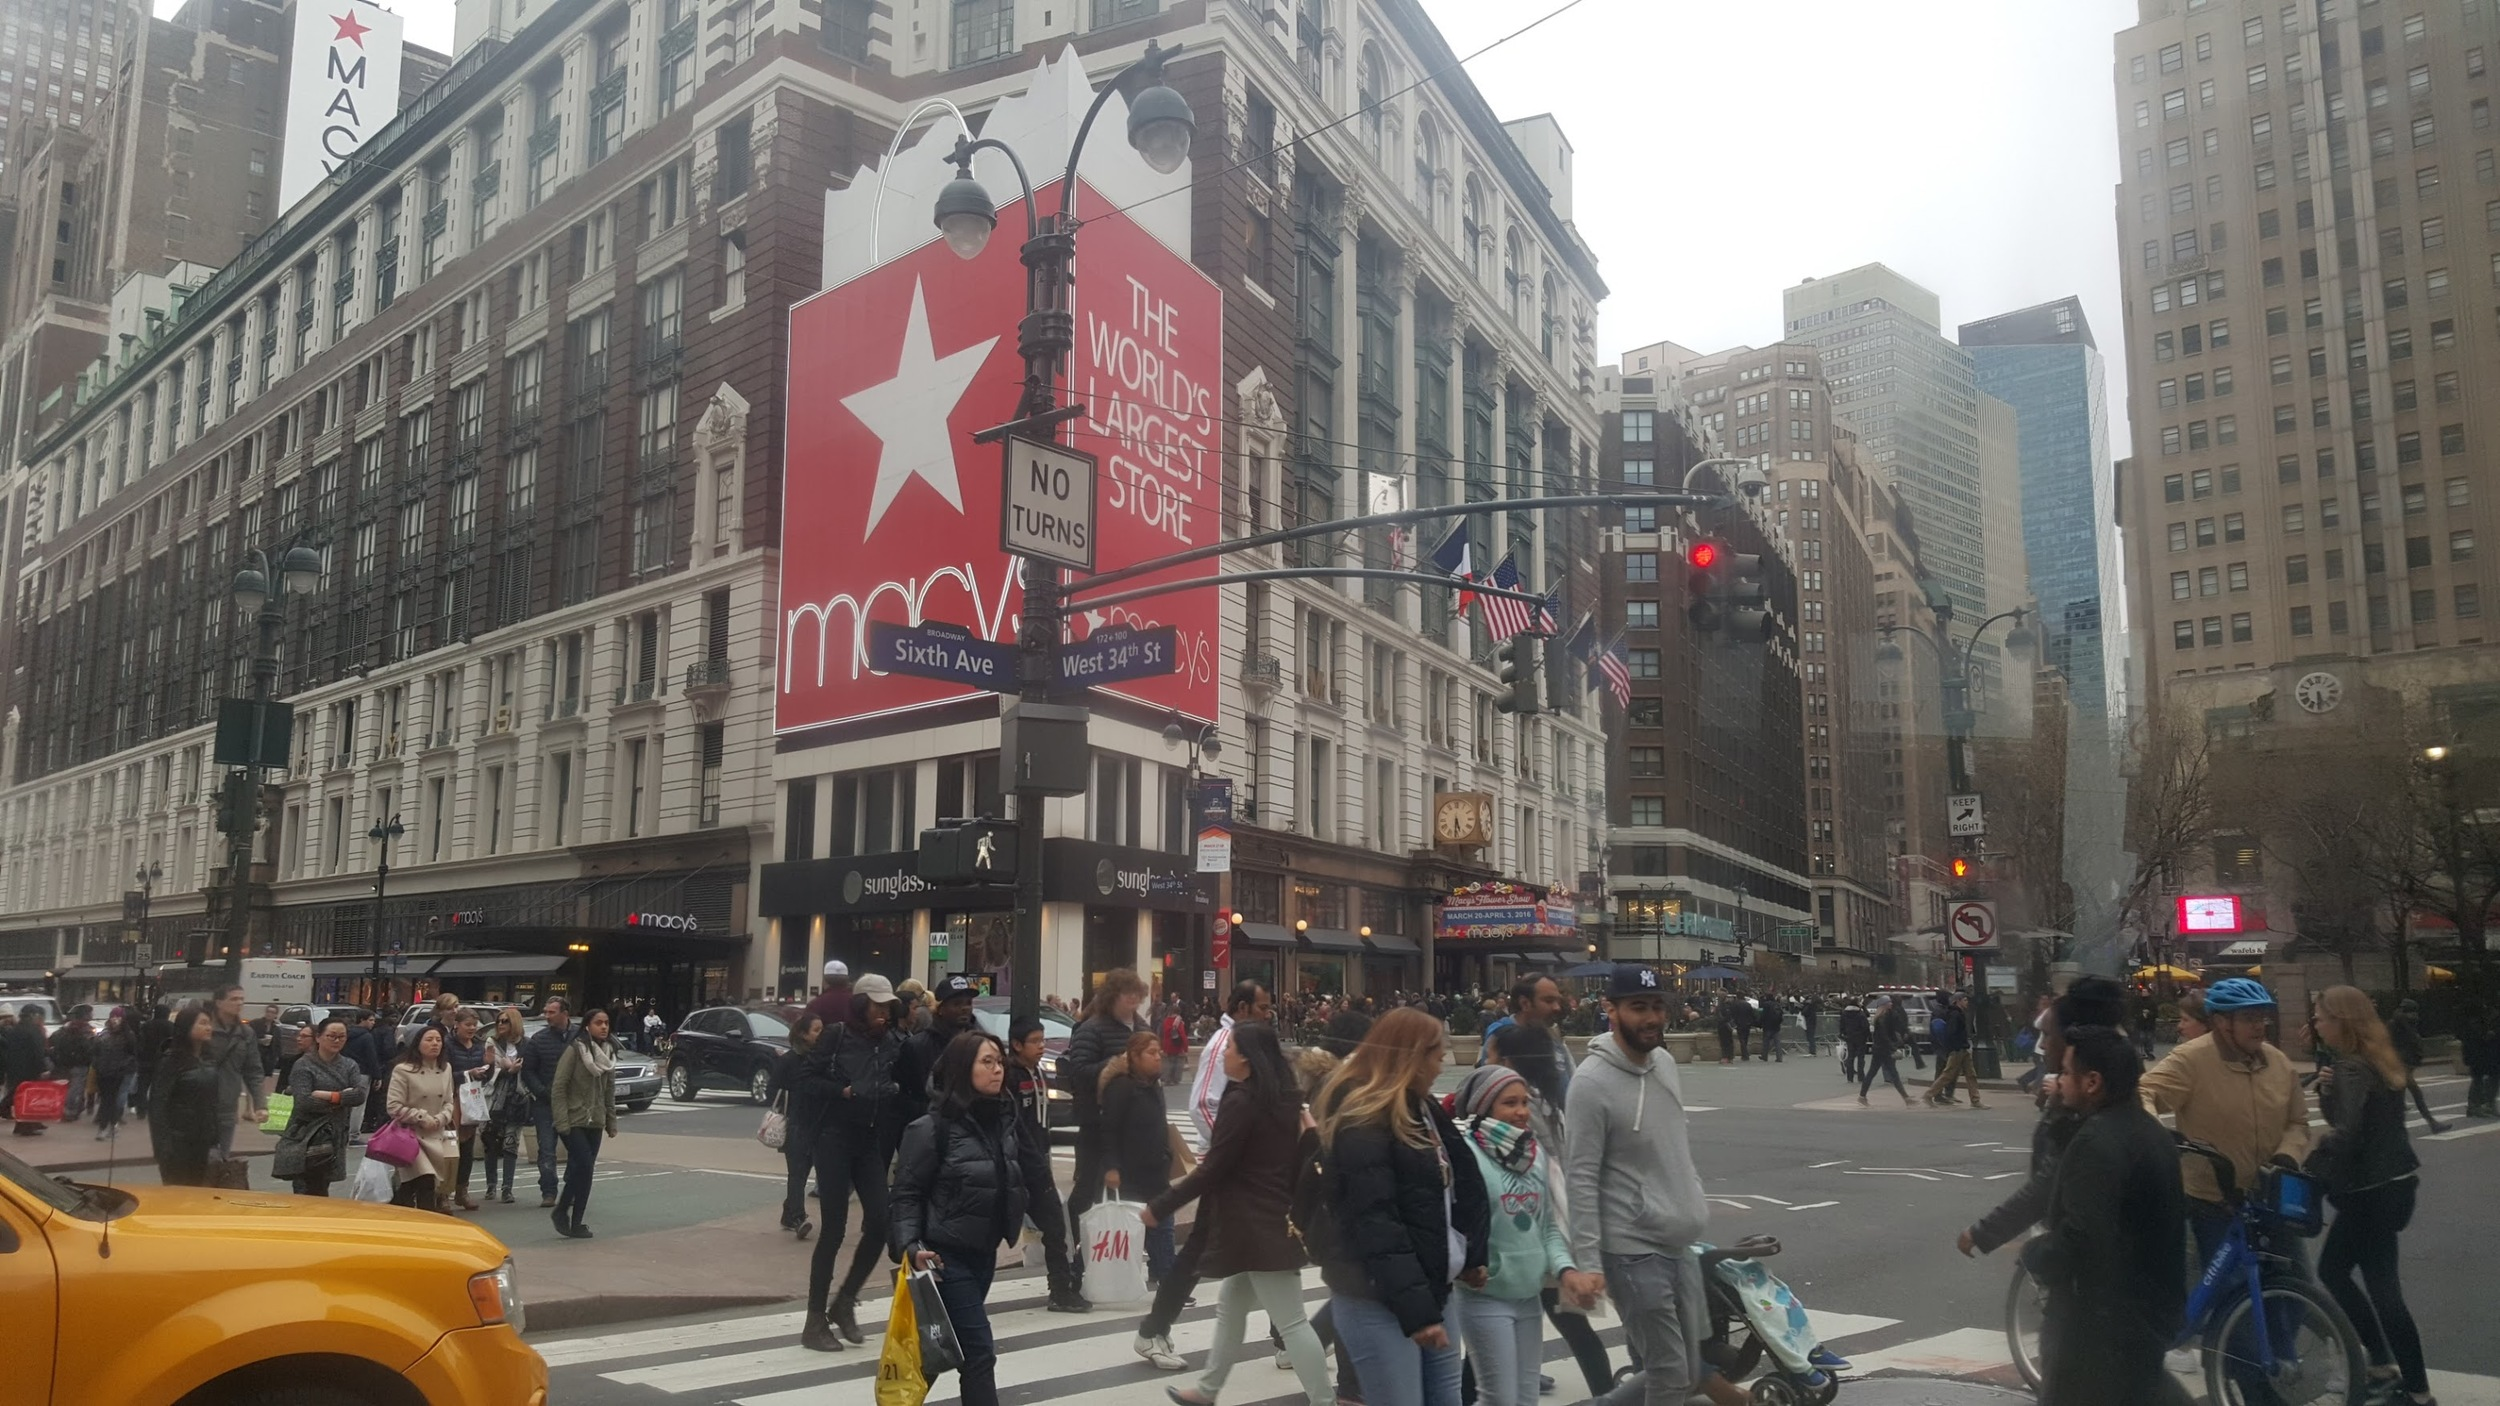 Macy's flagship building in midtown Manhattan.2,200,000 square feet of retail. A 260,000 square foot Walmart superstore is small potatoes.